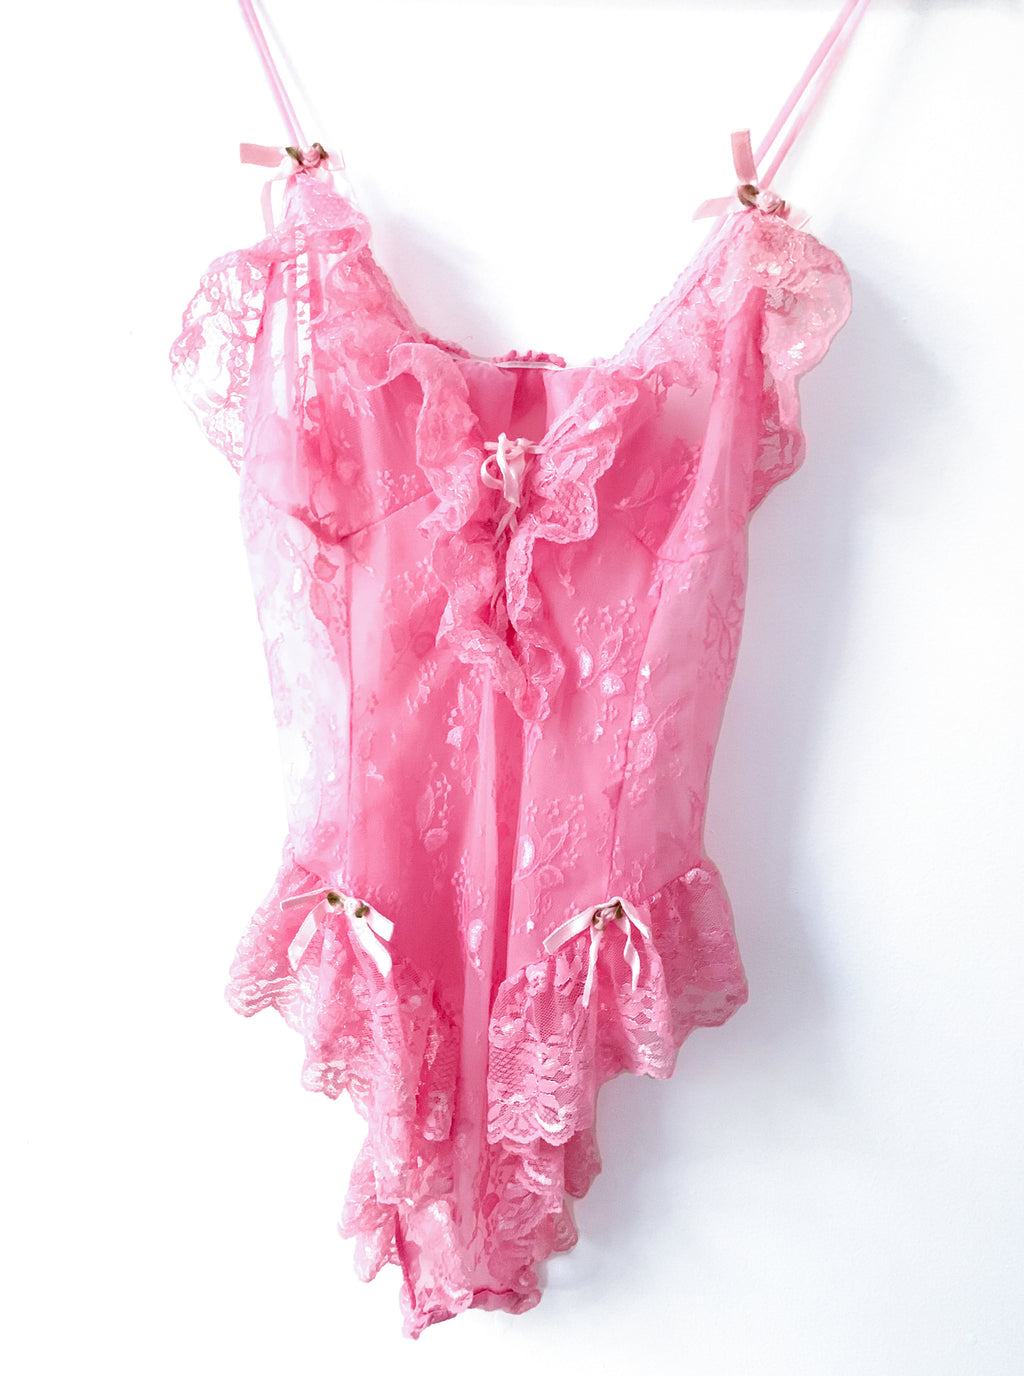 Bubblegum Pink Lace Teddy